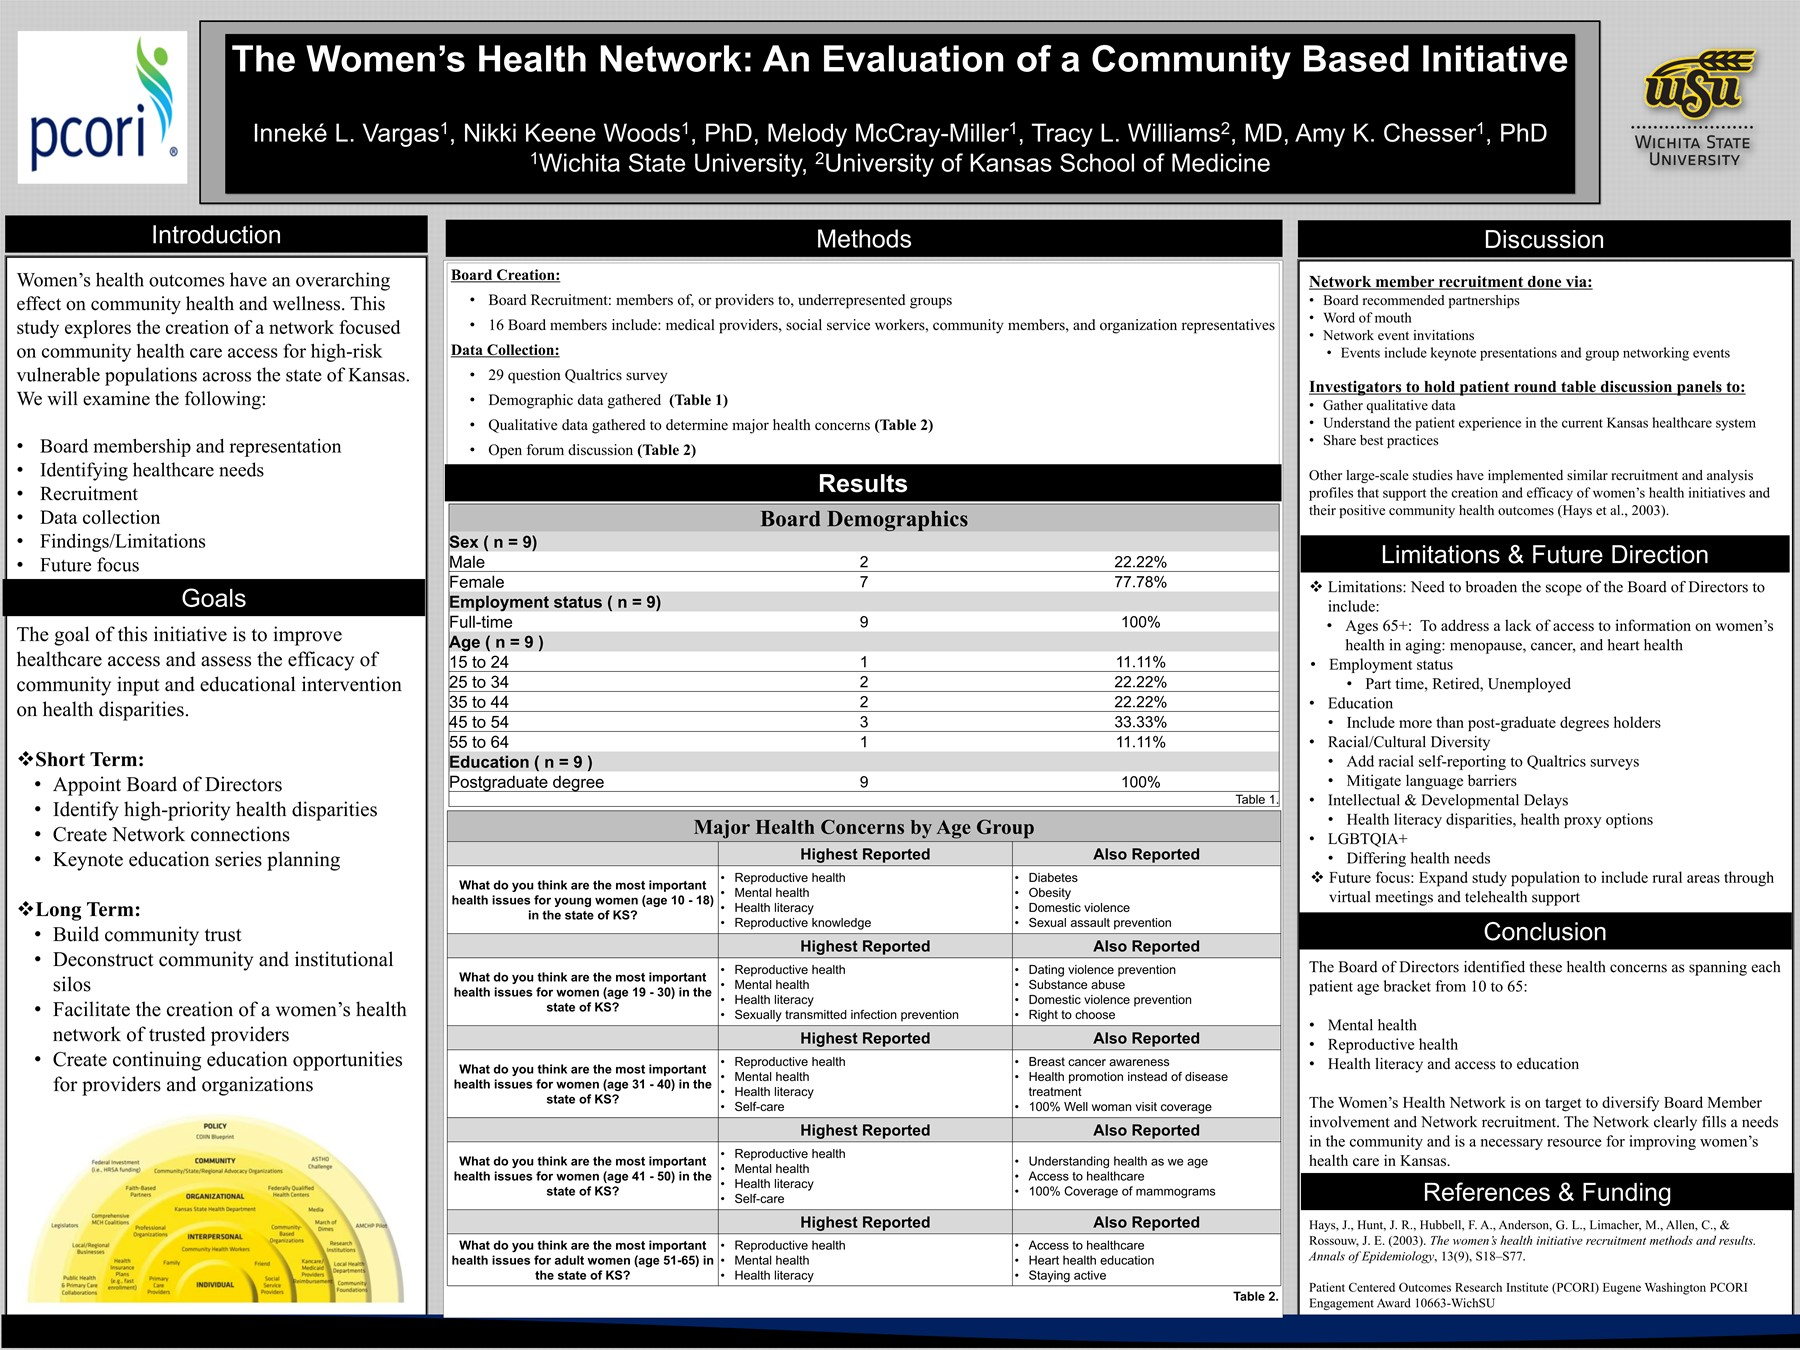 Women's Health Network: An Evaluation of a Community Program